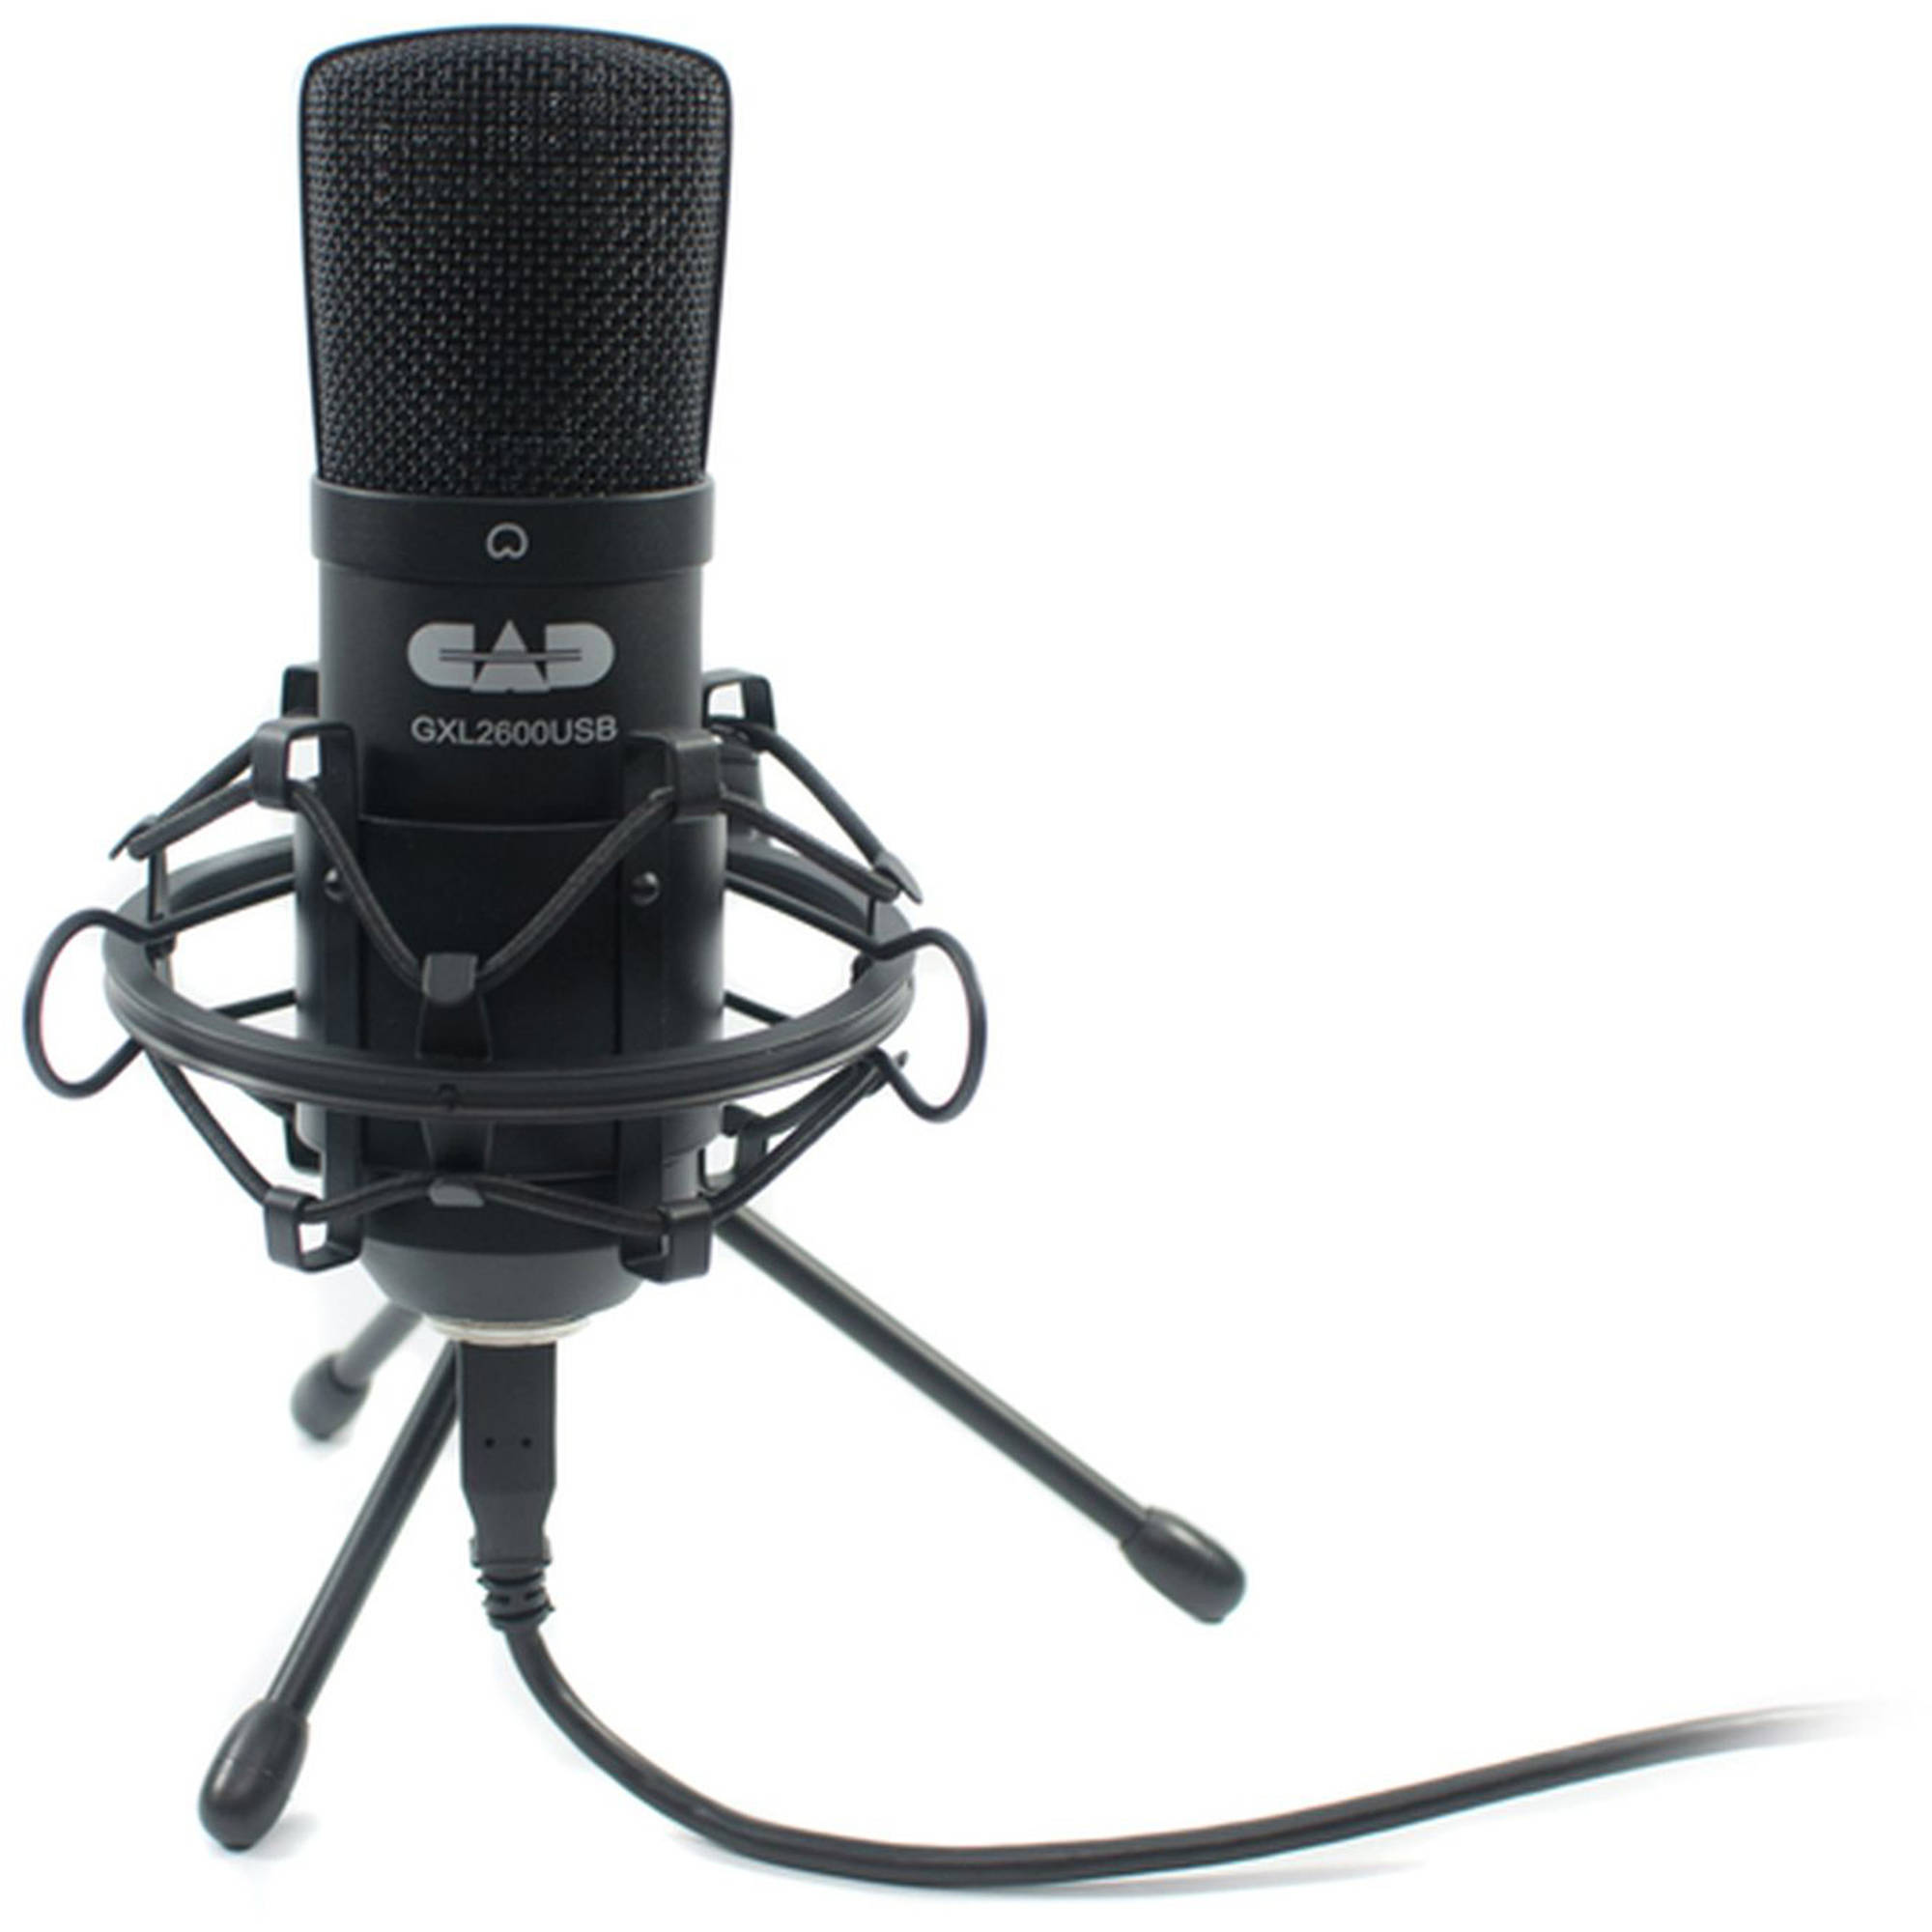 Premium USB Large Diaphragm Cardioid Condenser Microphone with Tripod Stand, 10' USB Cable